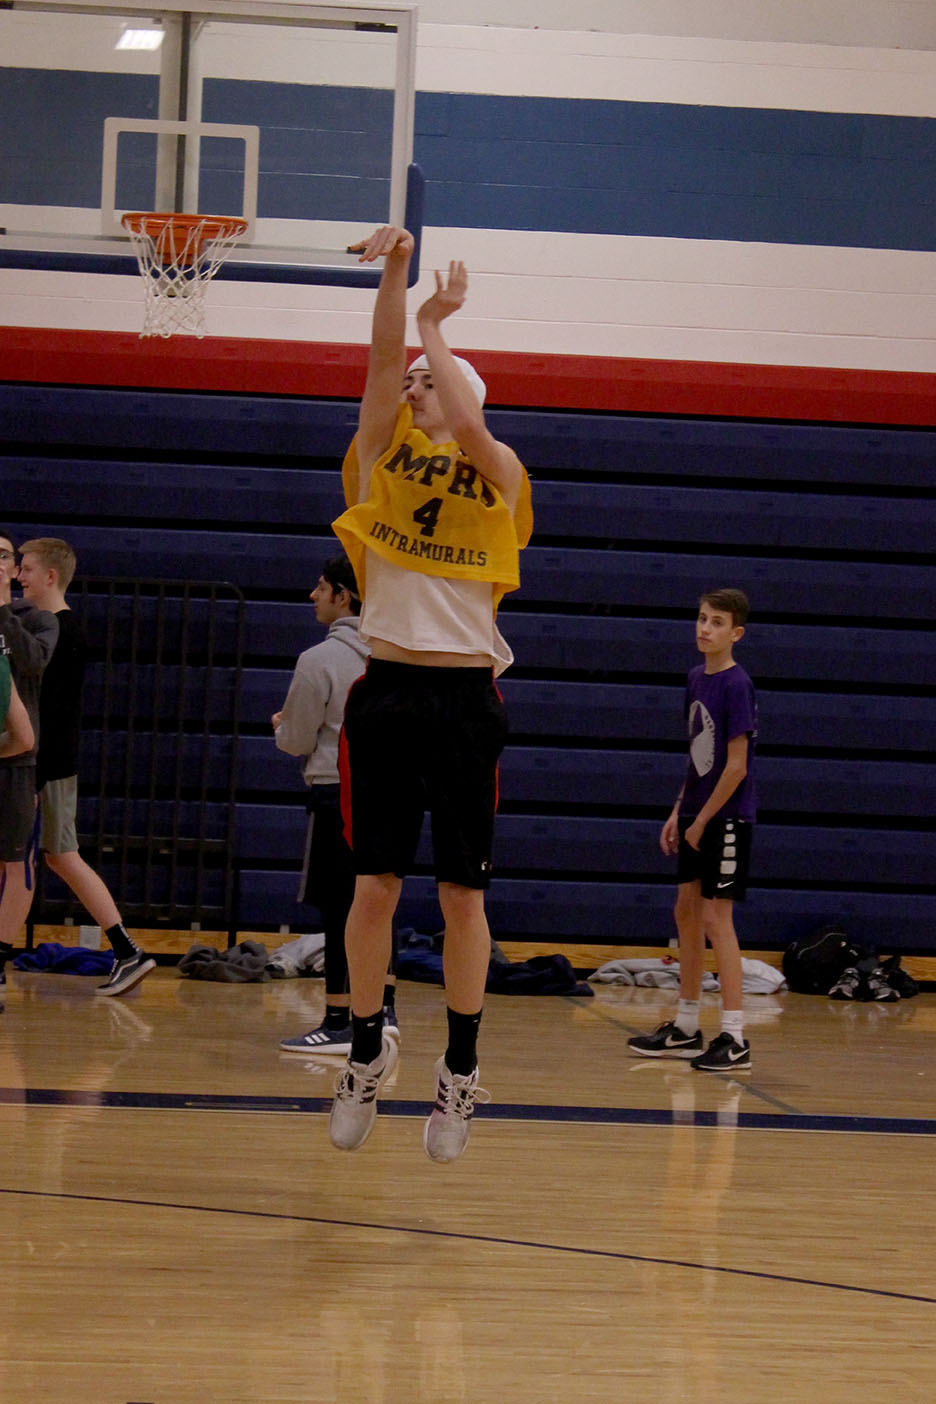 Senior Mason Jackson shoots the ball during his team's warm-up time at the intramural basketballl games on Feb. 5. Jackson's team the L.A. Leakers first game of the night was against the Star-Spangled Ballers.